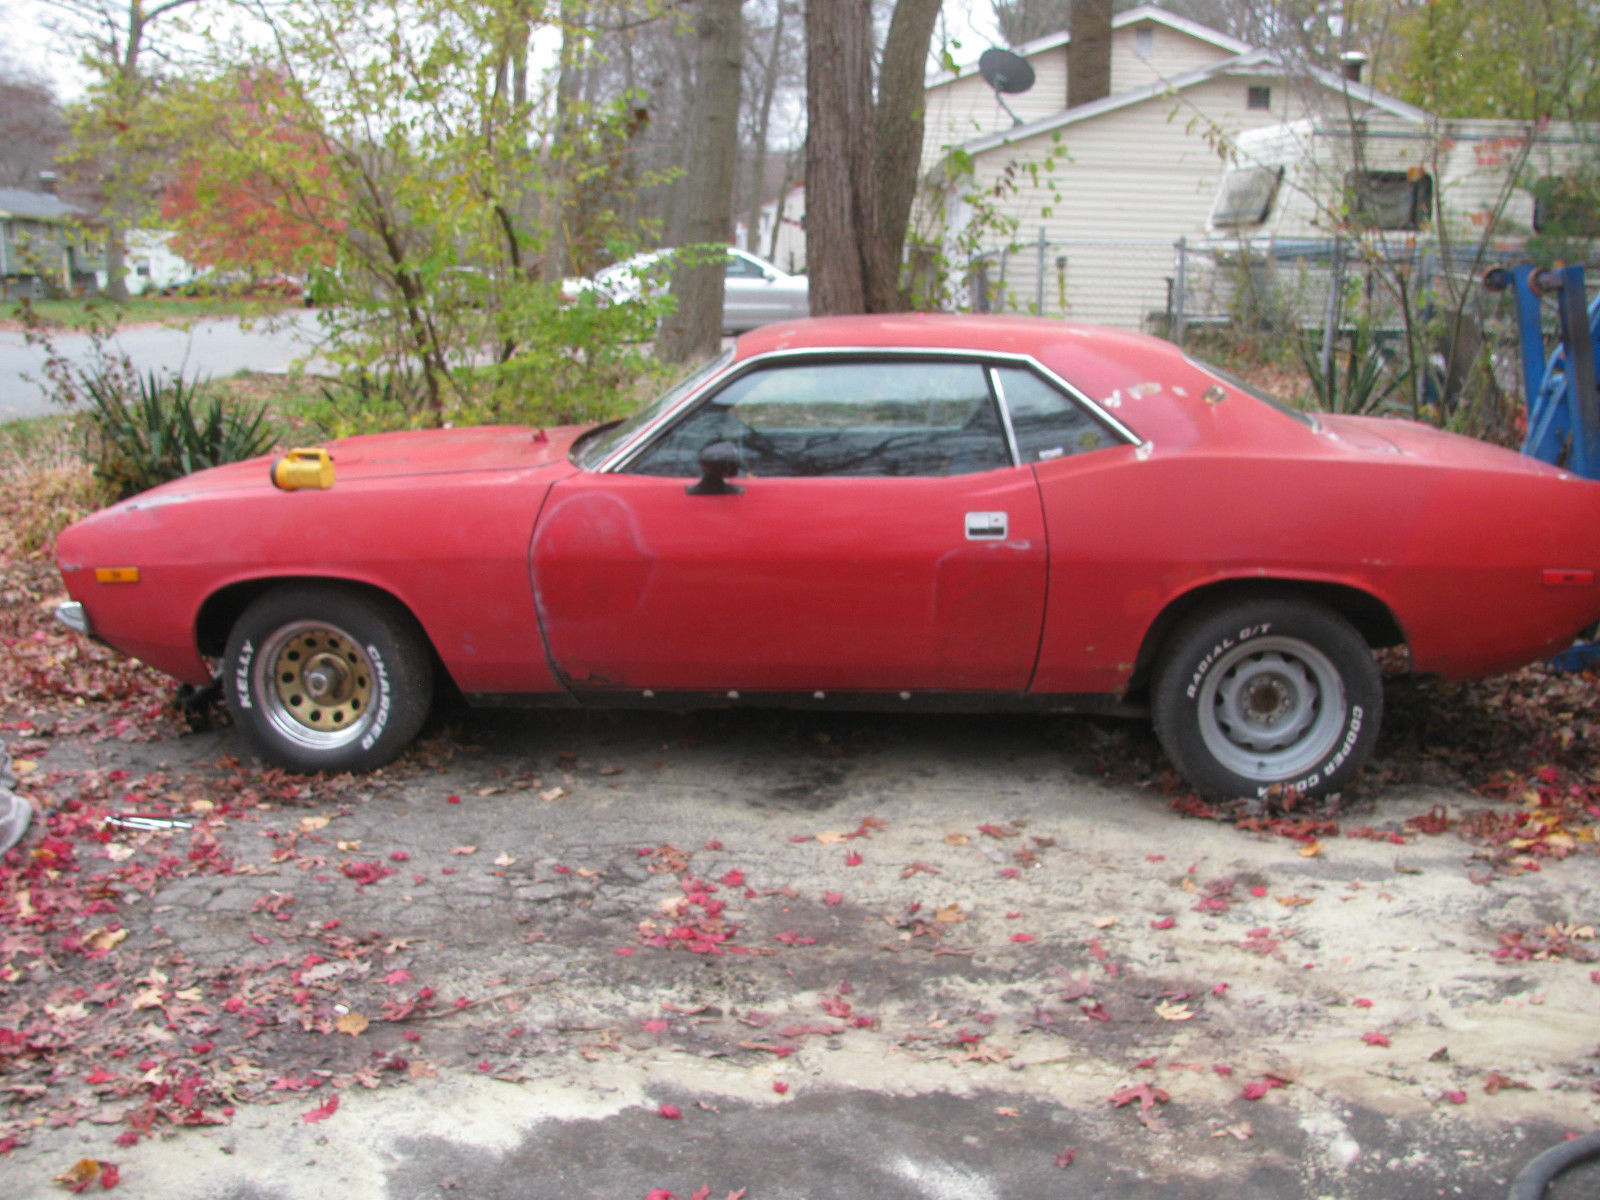 Cheap Project Cars >> 1972 plymouth cuda 340 4 speed project - Classic Plymouth Barracuda 1972 for sale